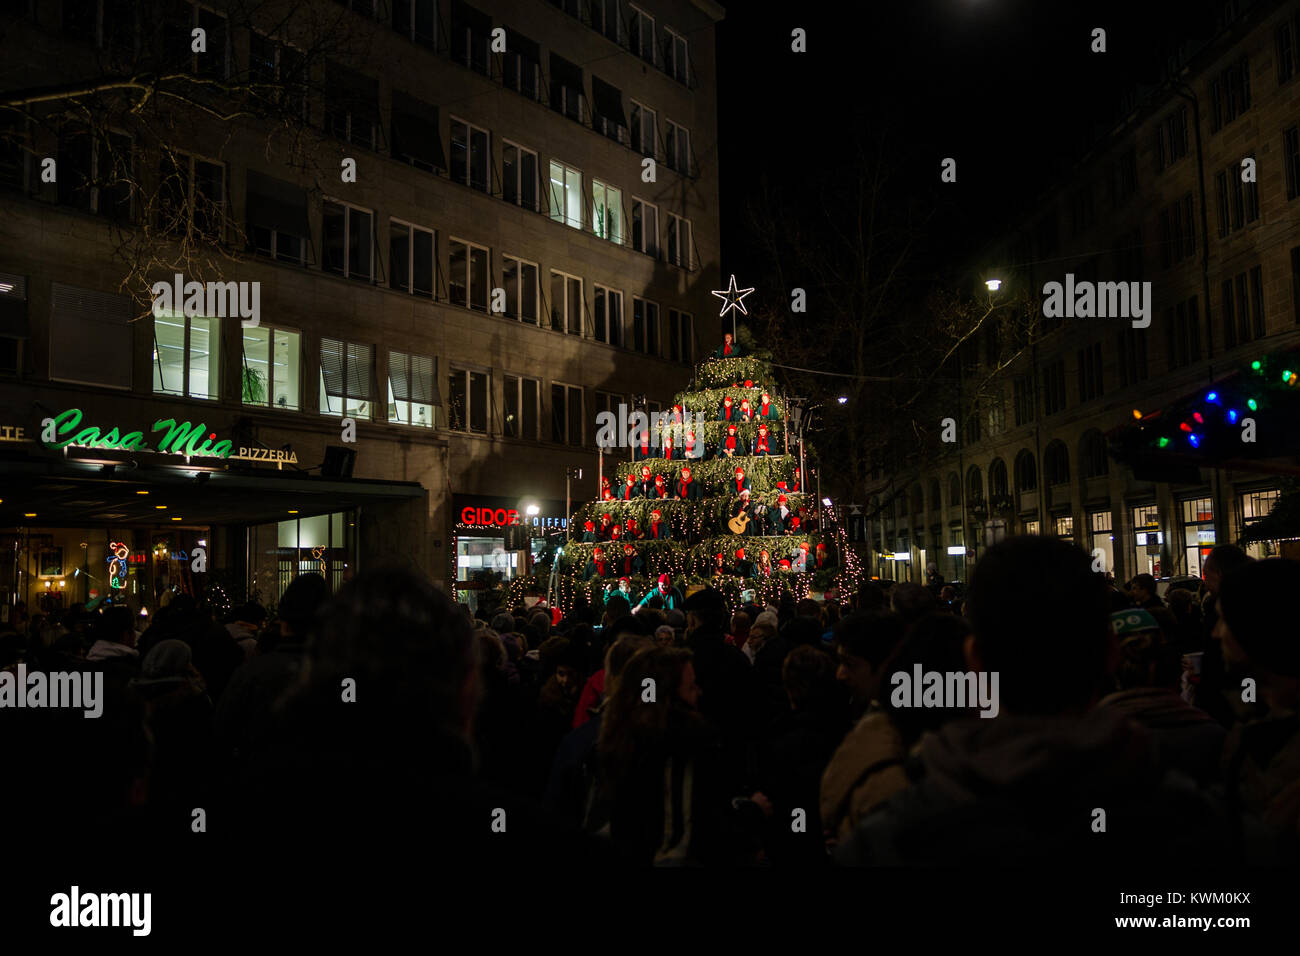 Christmas market in Zurich, Switzerland - Stock Image